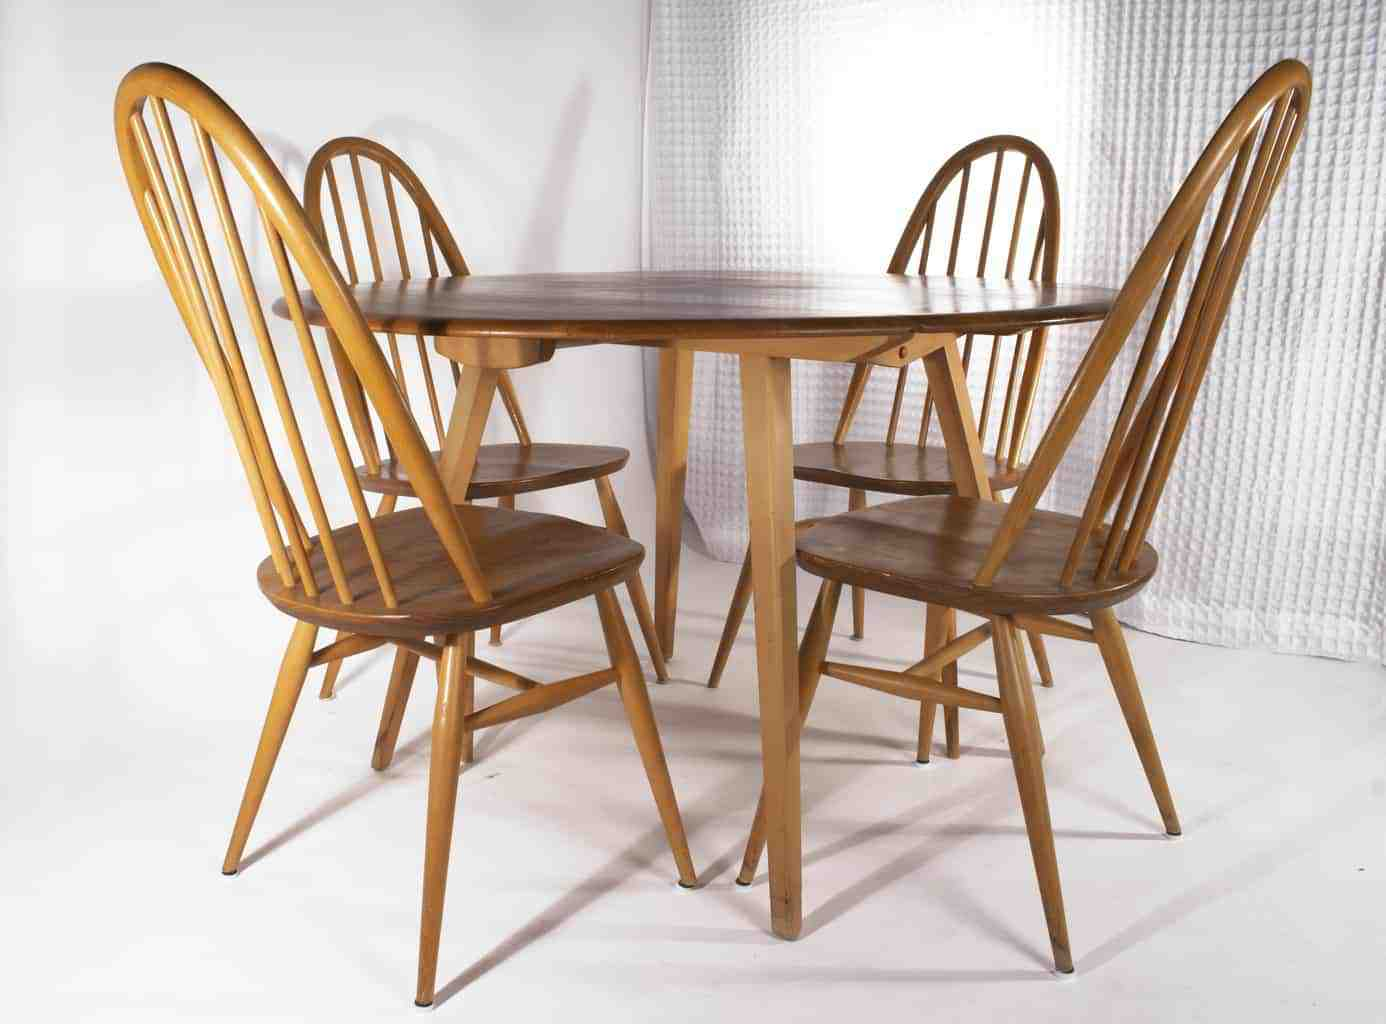 Ercol round drop-leaf Table with 4 Chairs